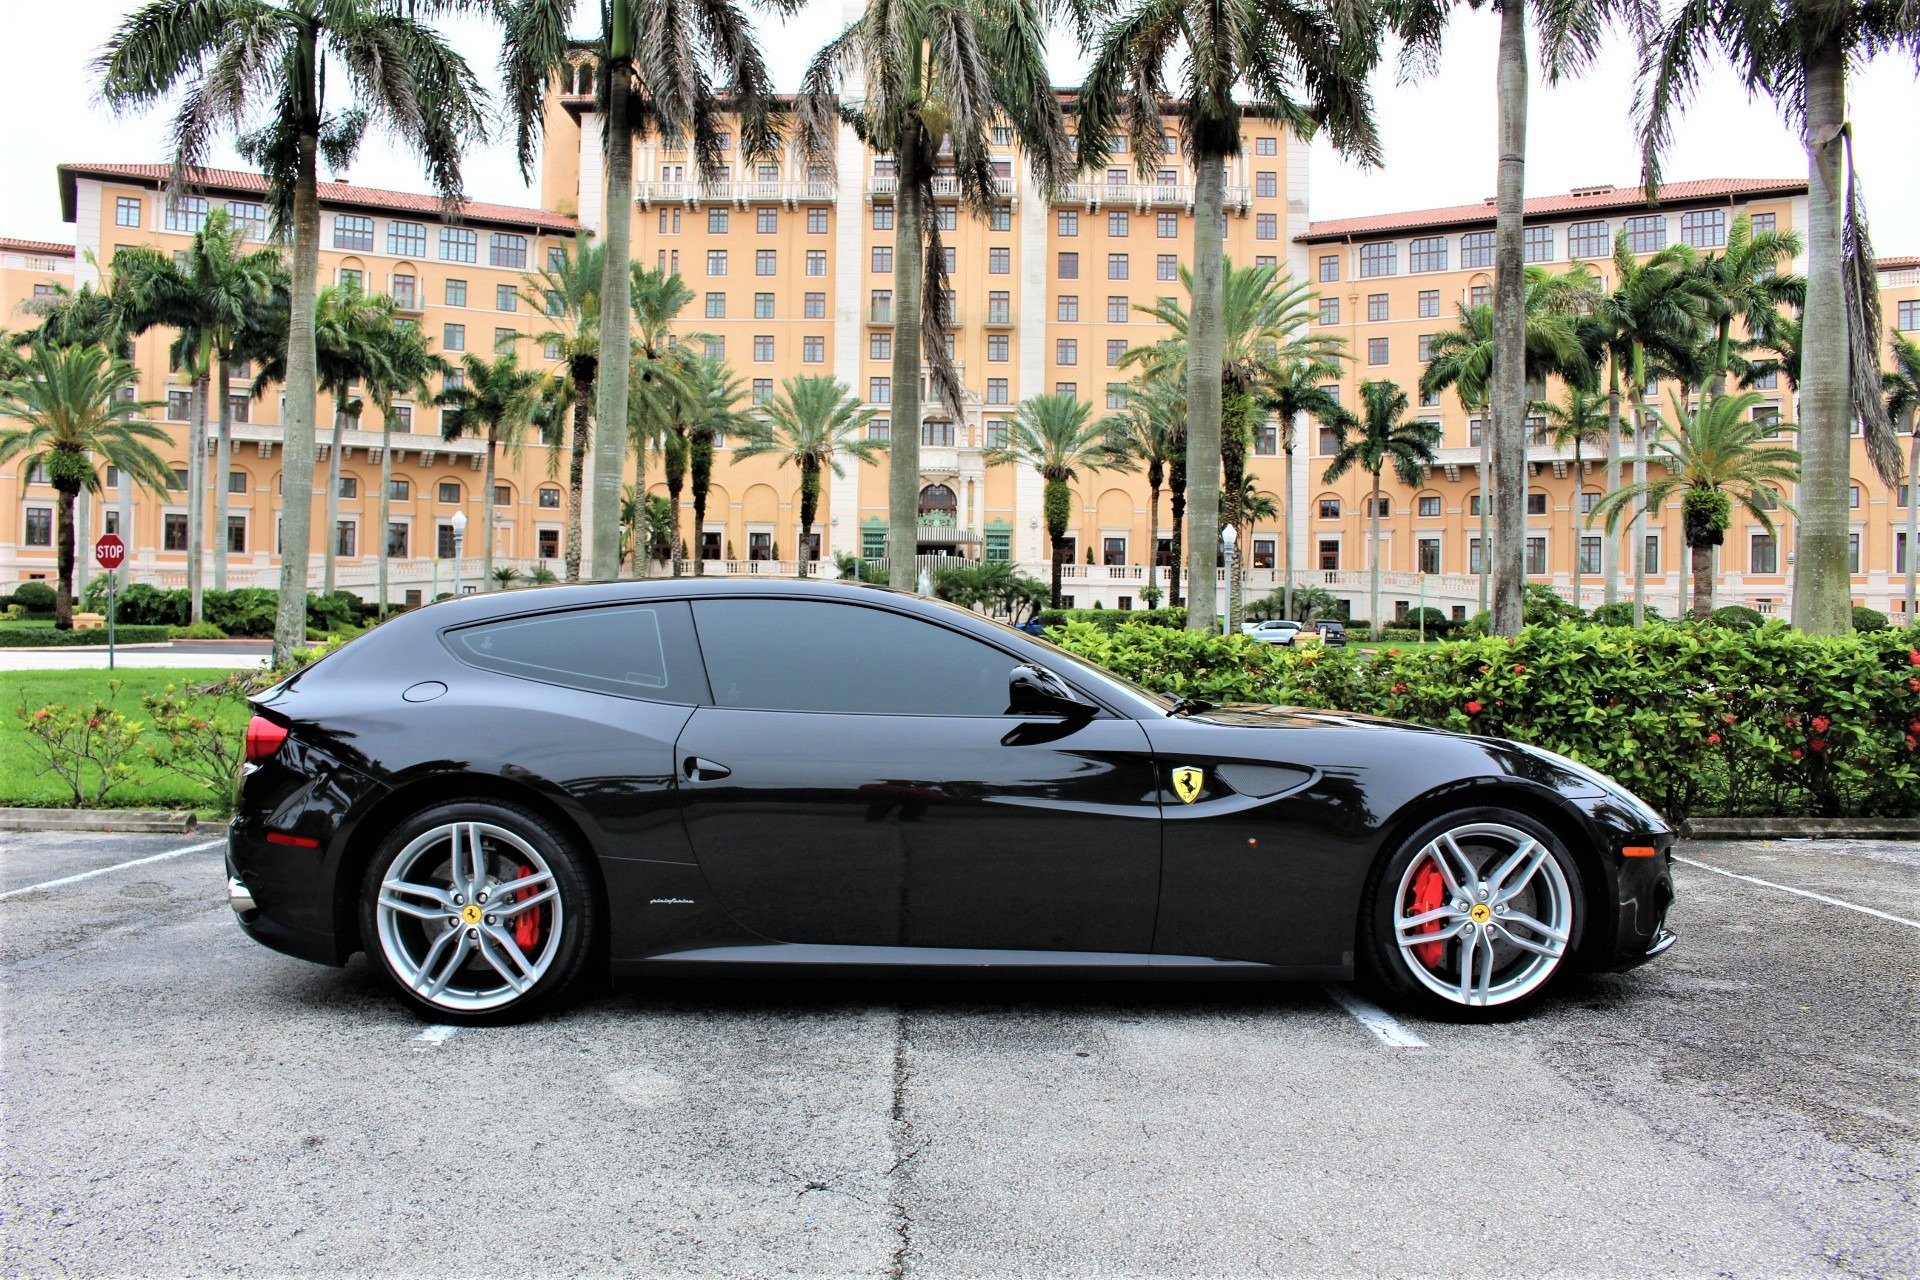 Used 2013 Ferrari FF for sale Sold at The Gables Sports Cars in Miami FL 33146 2